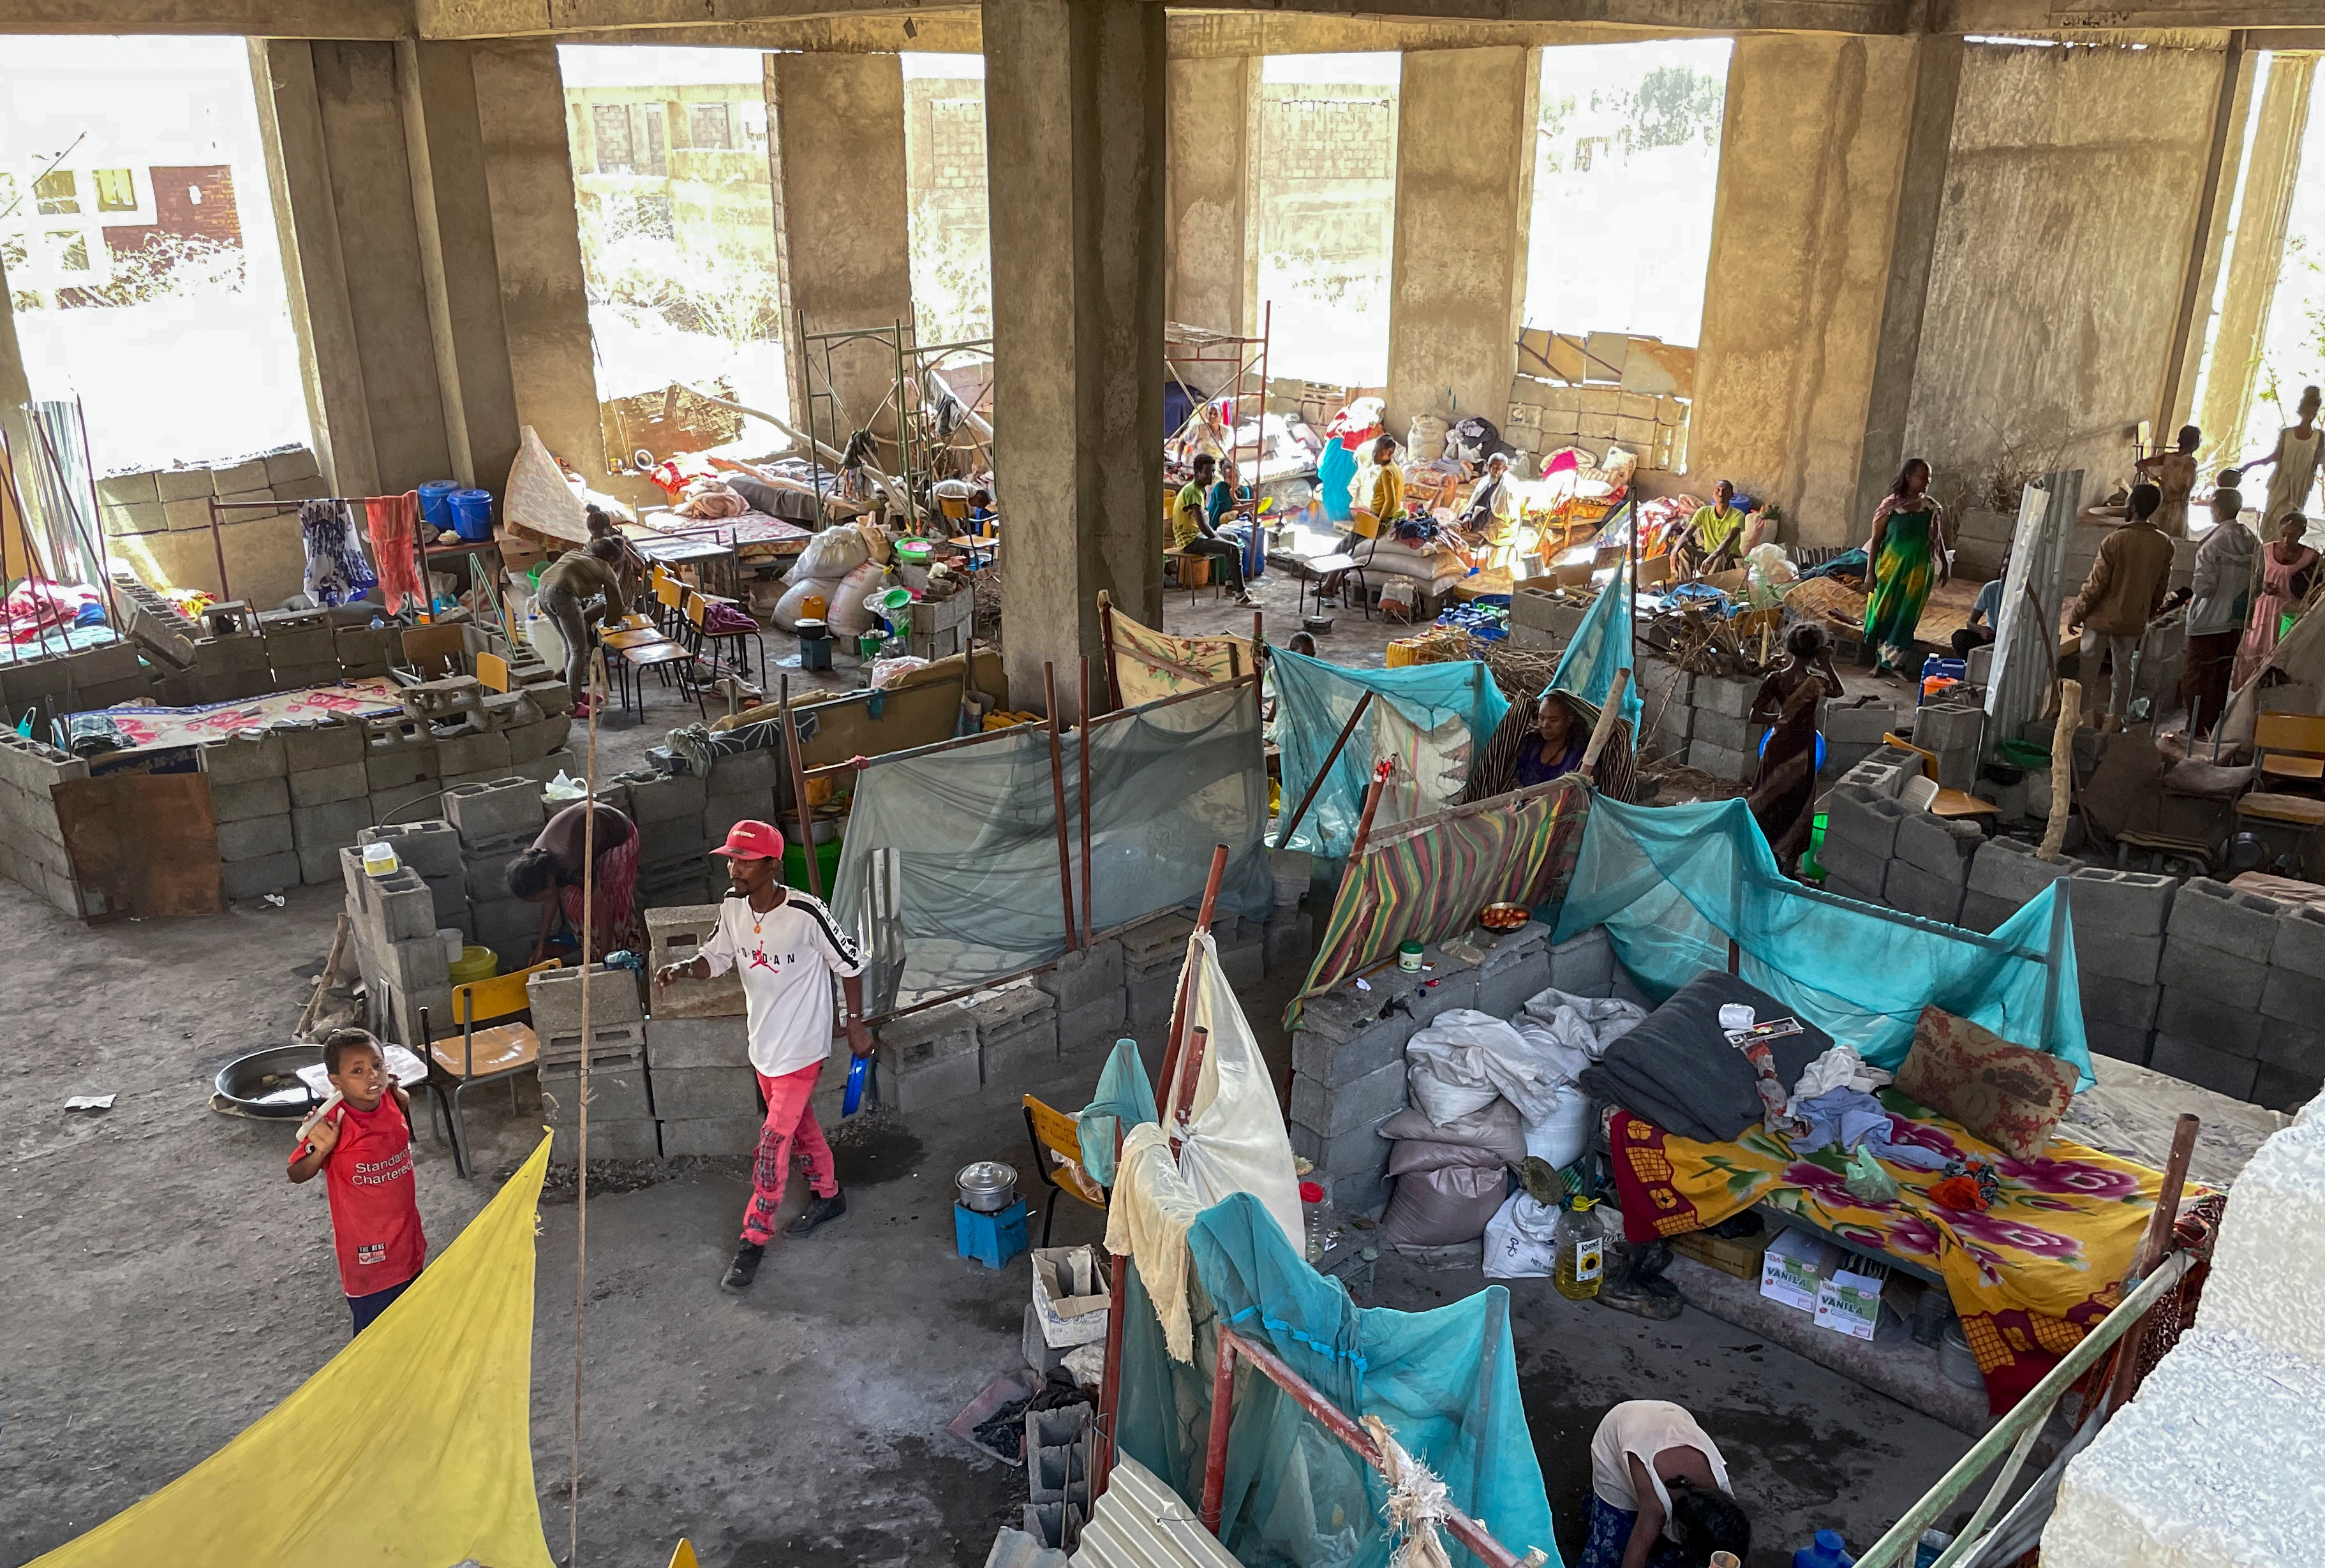 People displaced by the conflict live in crowded conditions in a derelict building of Axum University, in the Tigray region, Tuesday, Feb. 23, 2021.